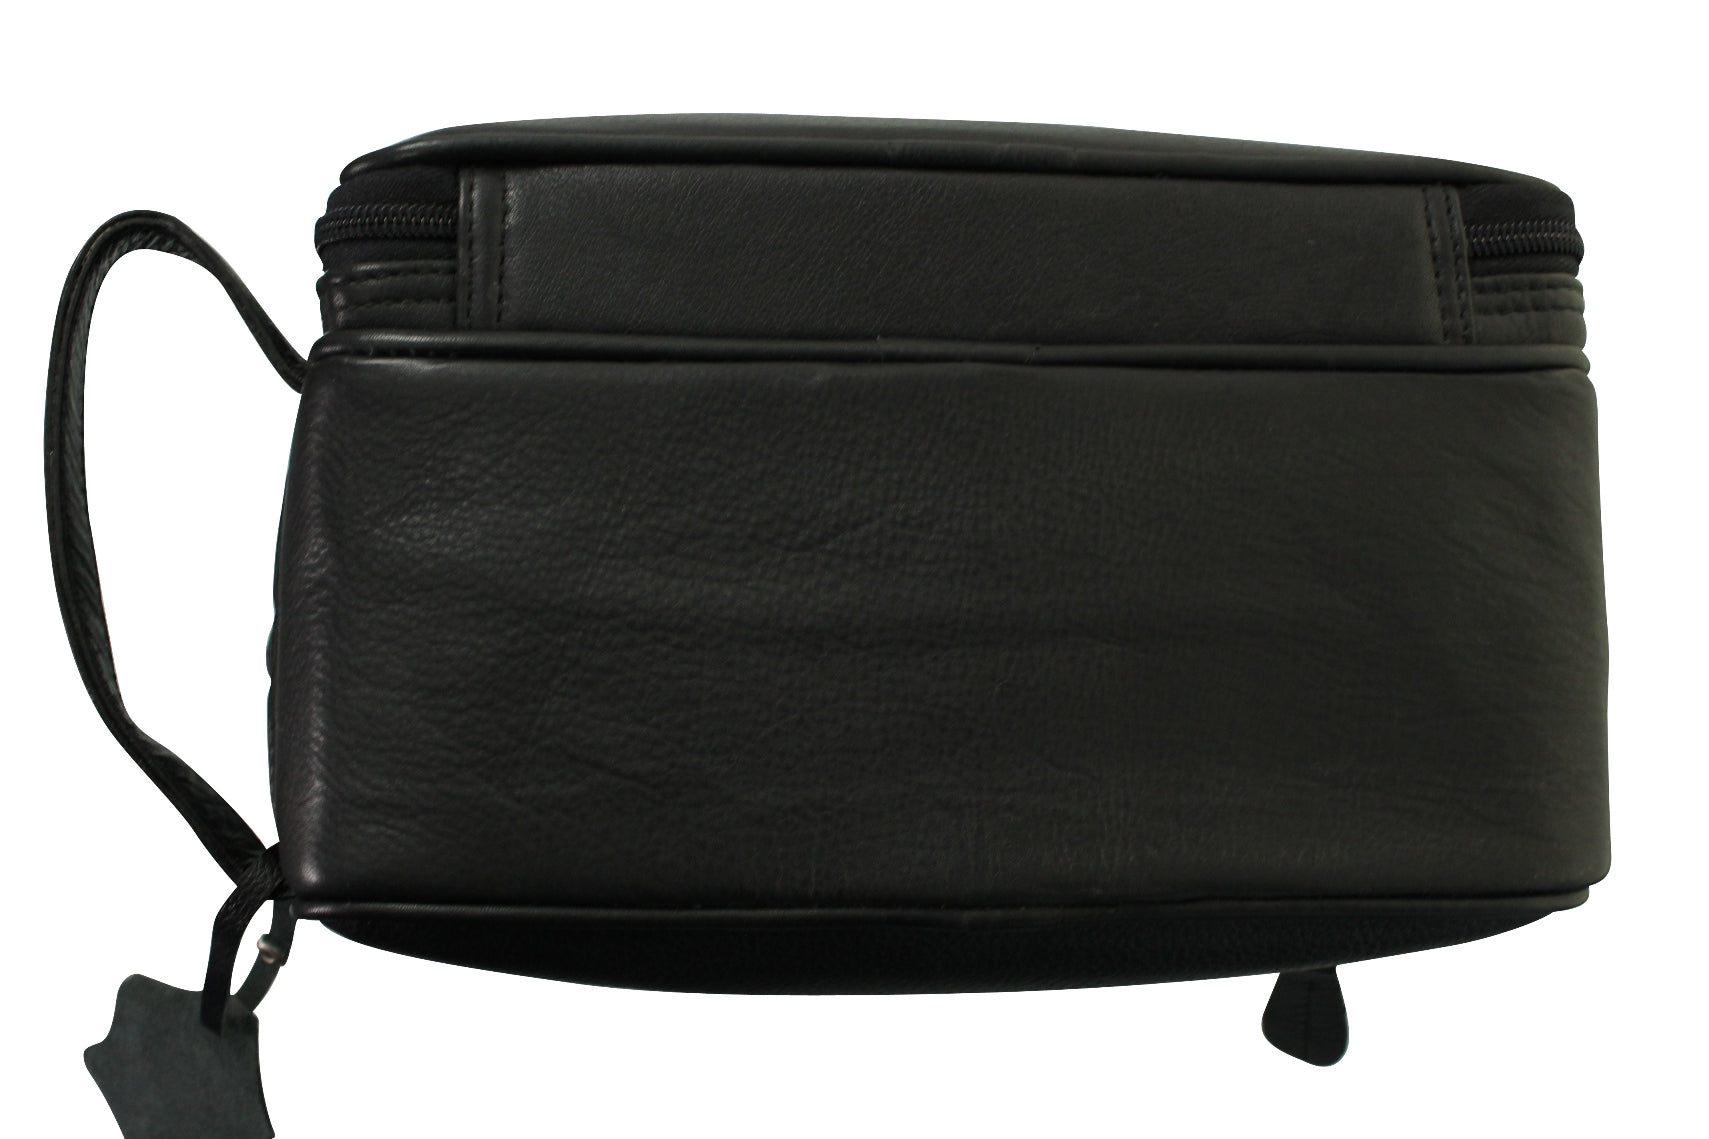 Real Leather Toiletry Wash Bag by Xact Clothing (Black)